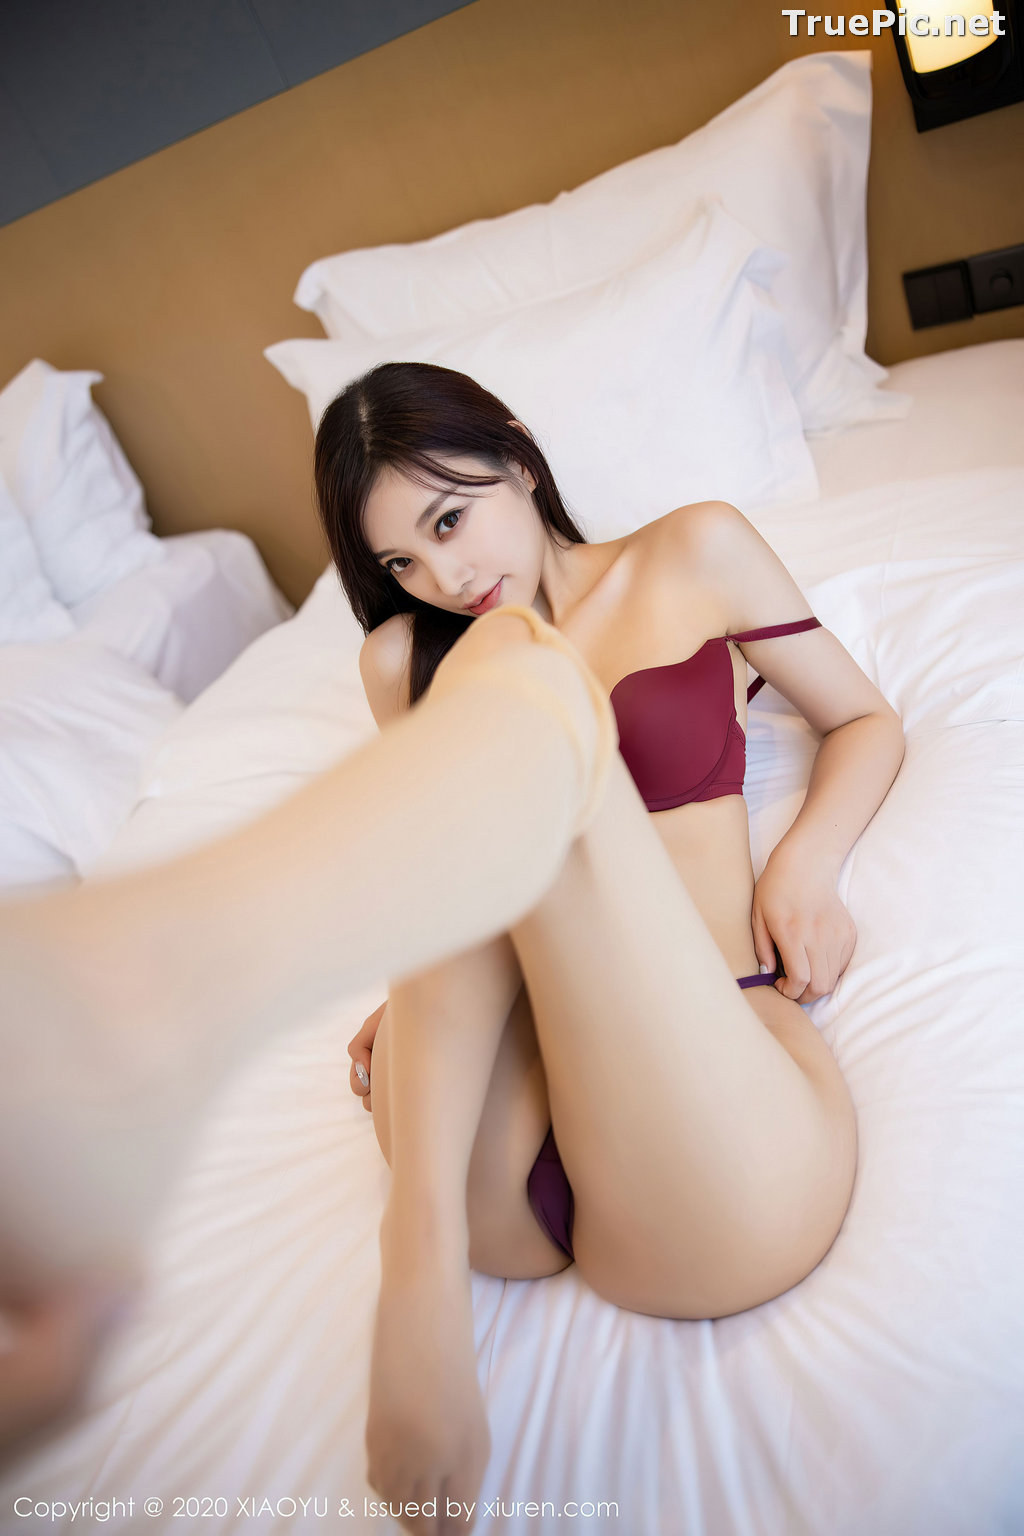 Image XiaoYu Vol.414 - Chinese Model - Yang Chen Chen (杨晨晨sugar) - Sexy Fitness Girl - TruePic.net - Picture-49